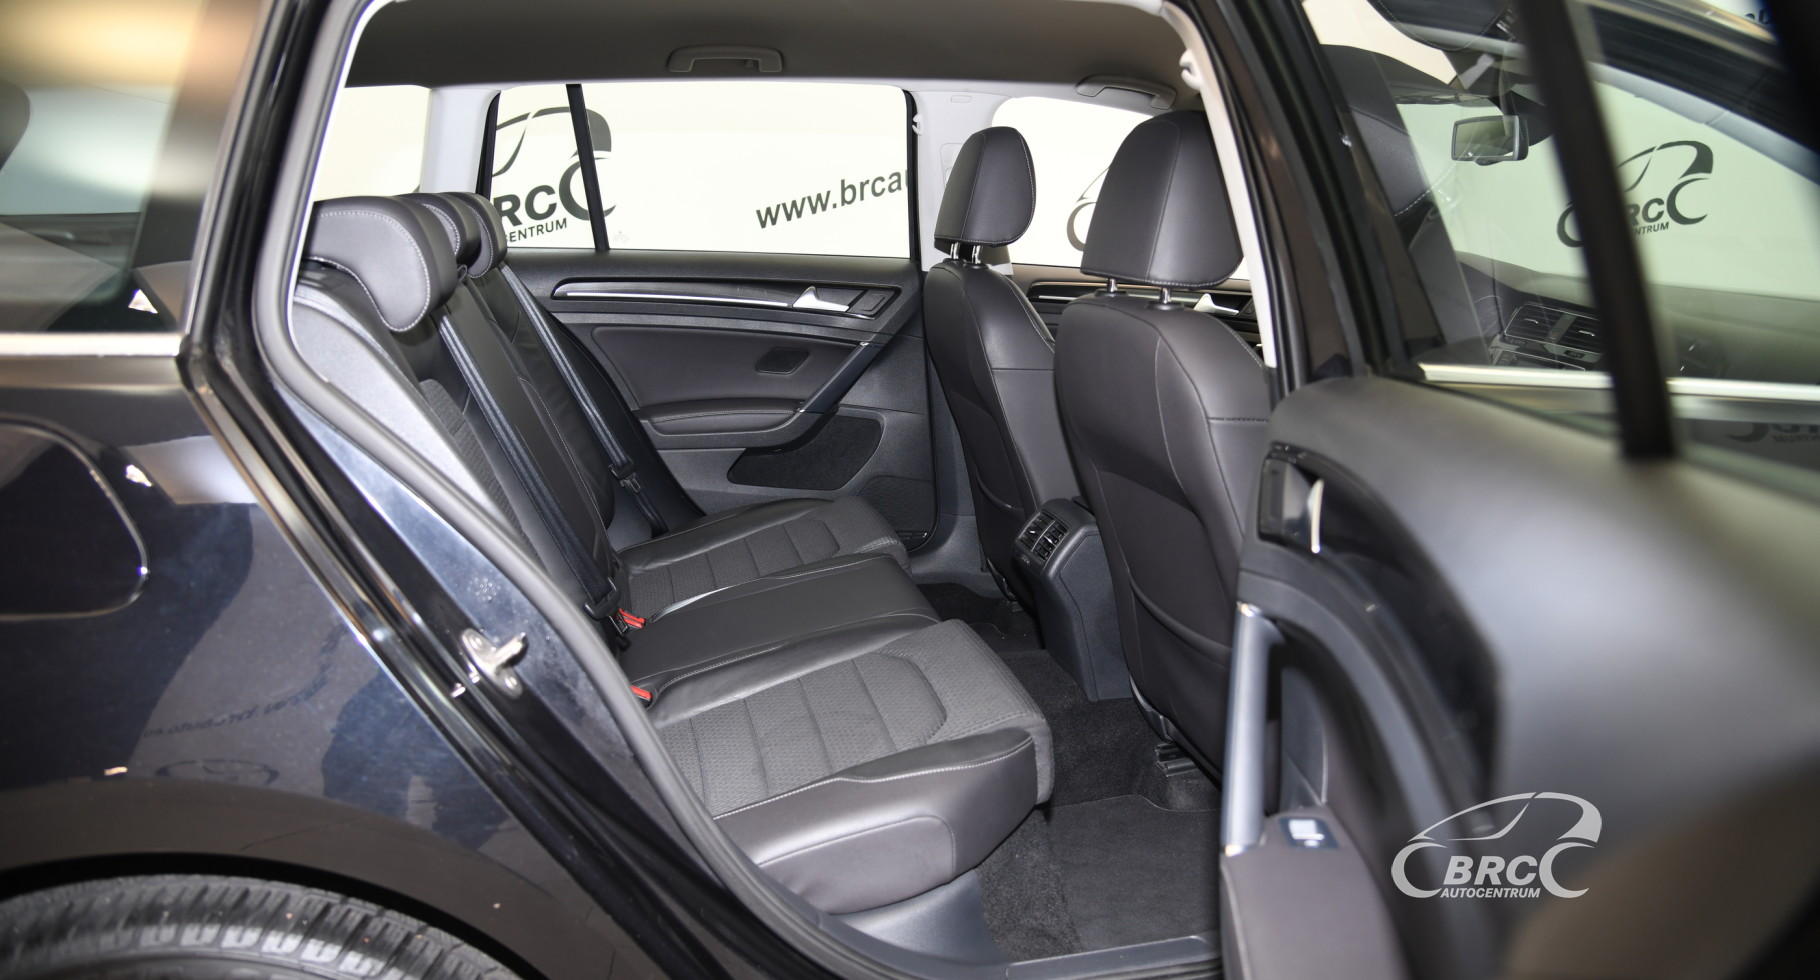 Volkswagen Golf 1.6 TDI Variant Highline